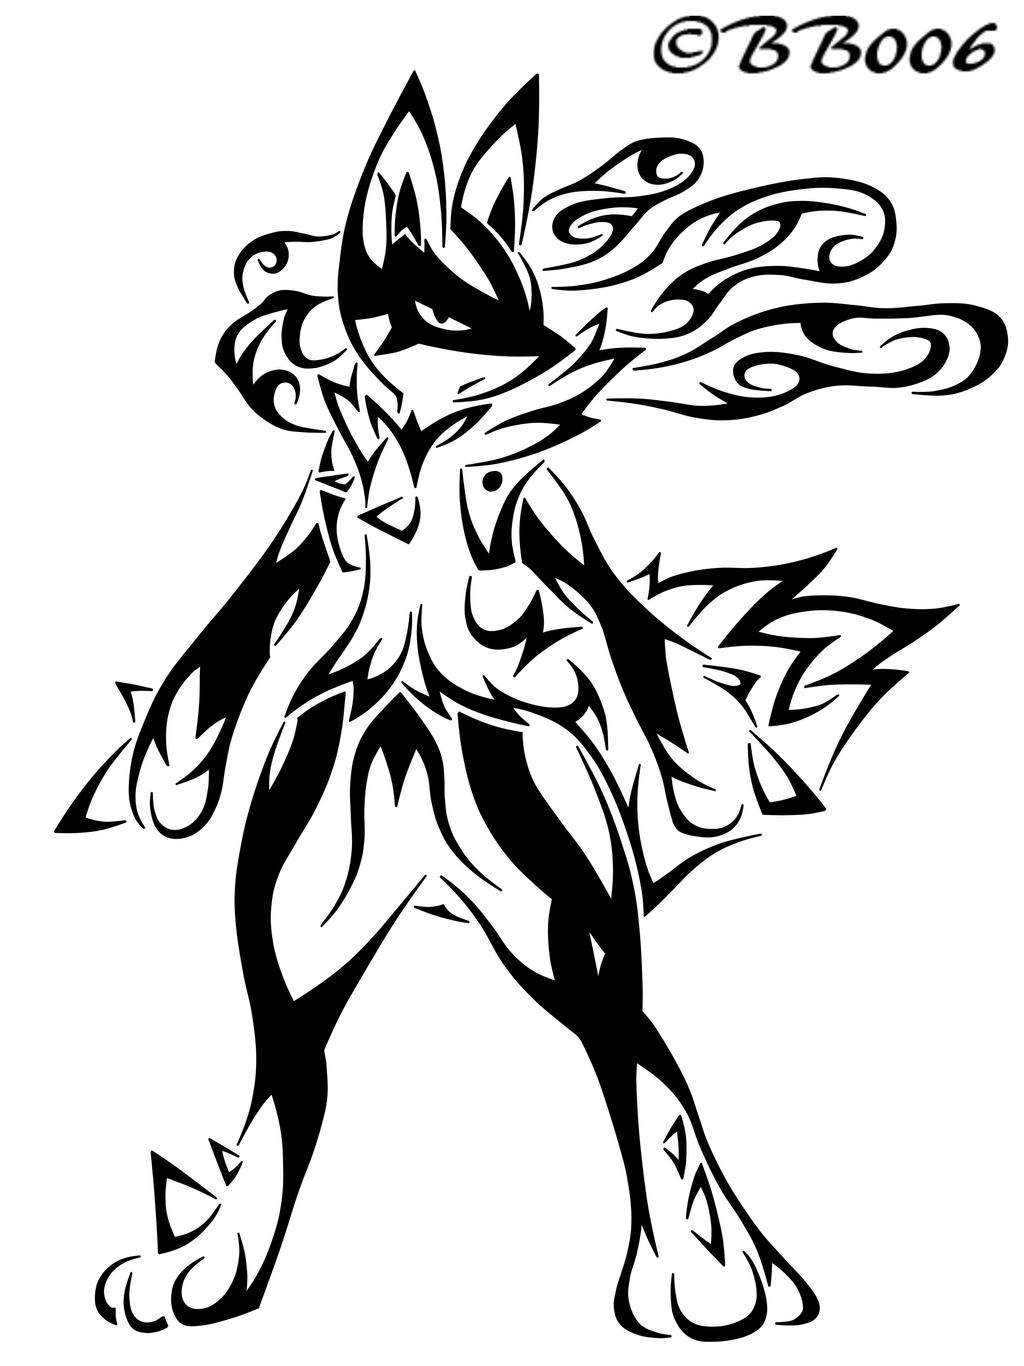 Pokemon coloring pages of mega lucario - Tribal Mega Lucario By Blackbutterfly006 Tribal Mega Lucario By Blackbutterfly006